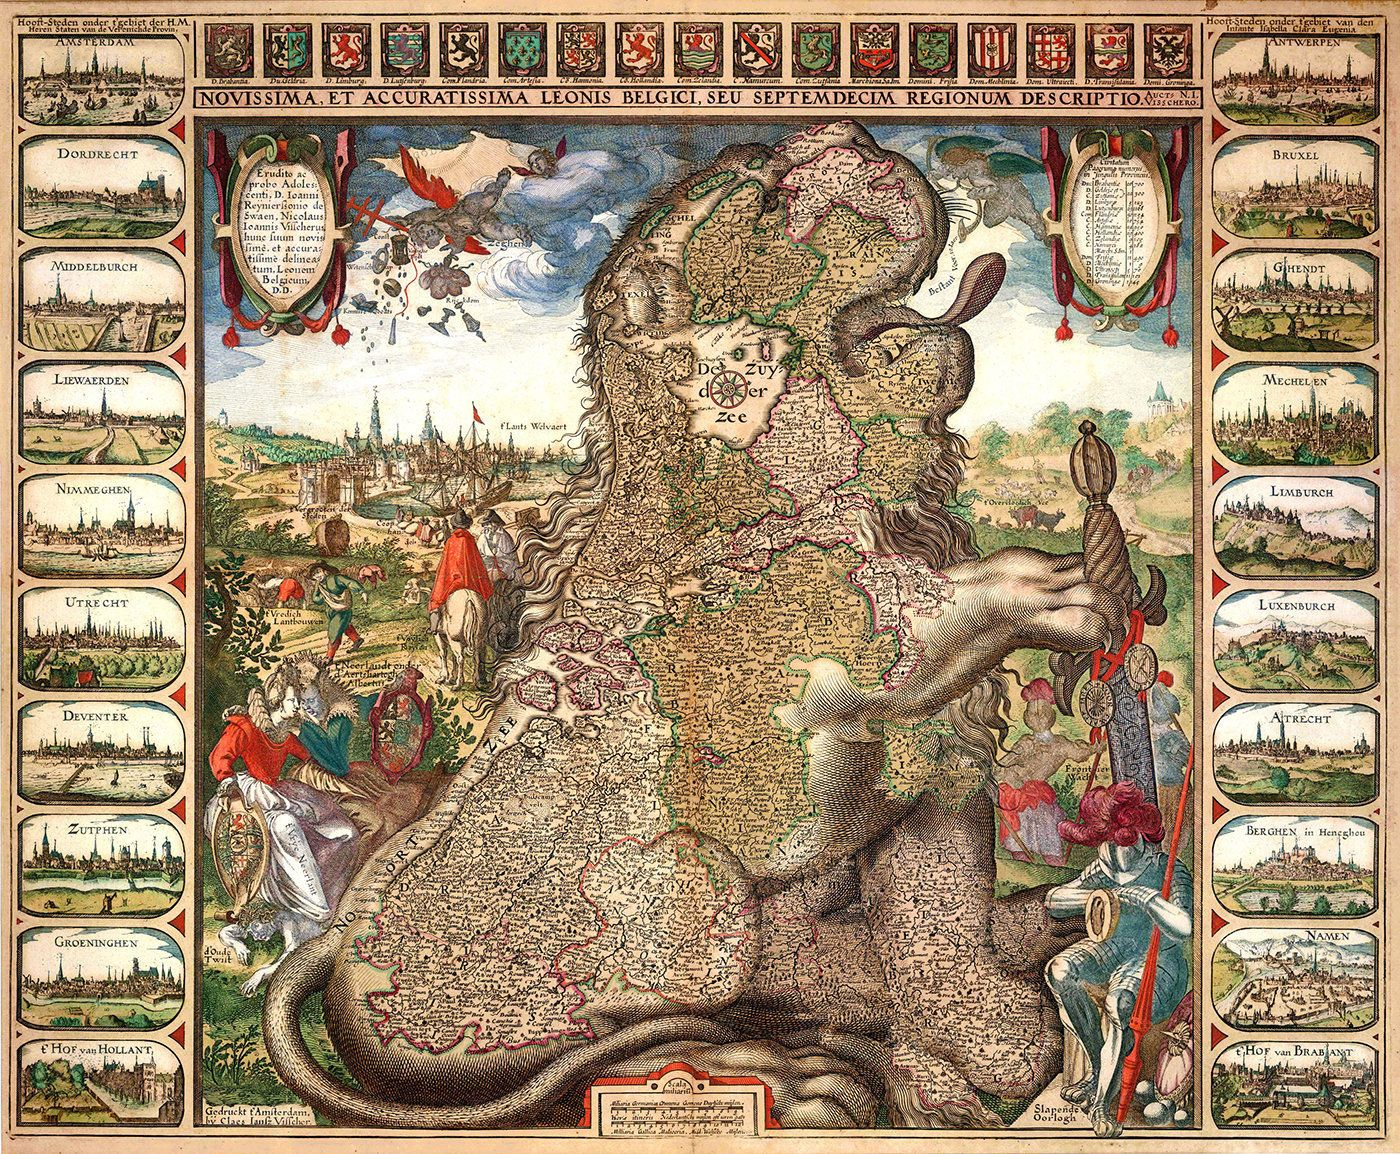 9 Of The Most Exquisite Maps The World Has Ever